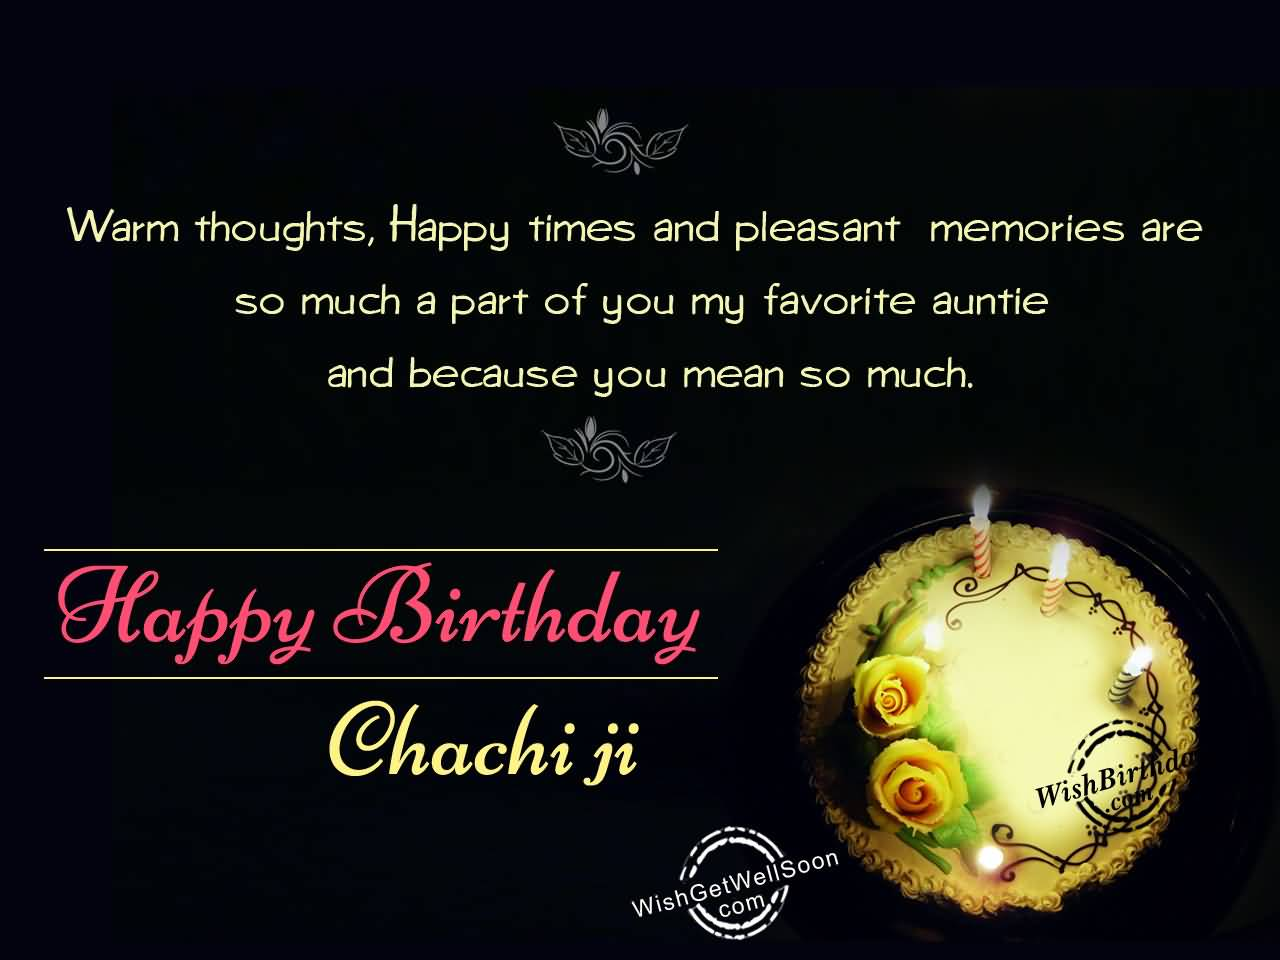 Warm Thoughts, Happy Times And Pleasent Happy Birthday Chachi Ji